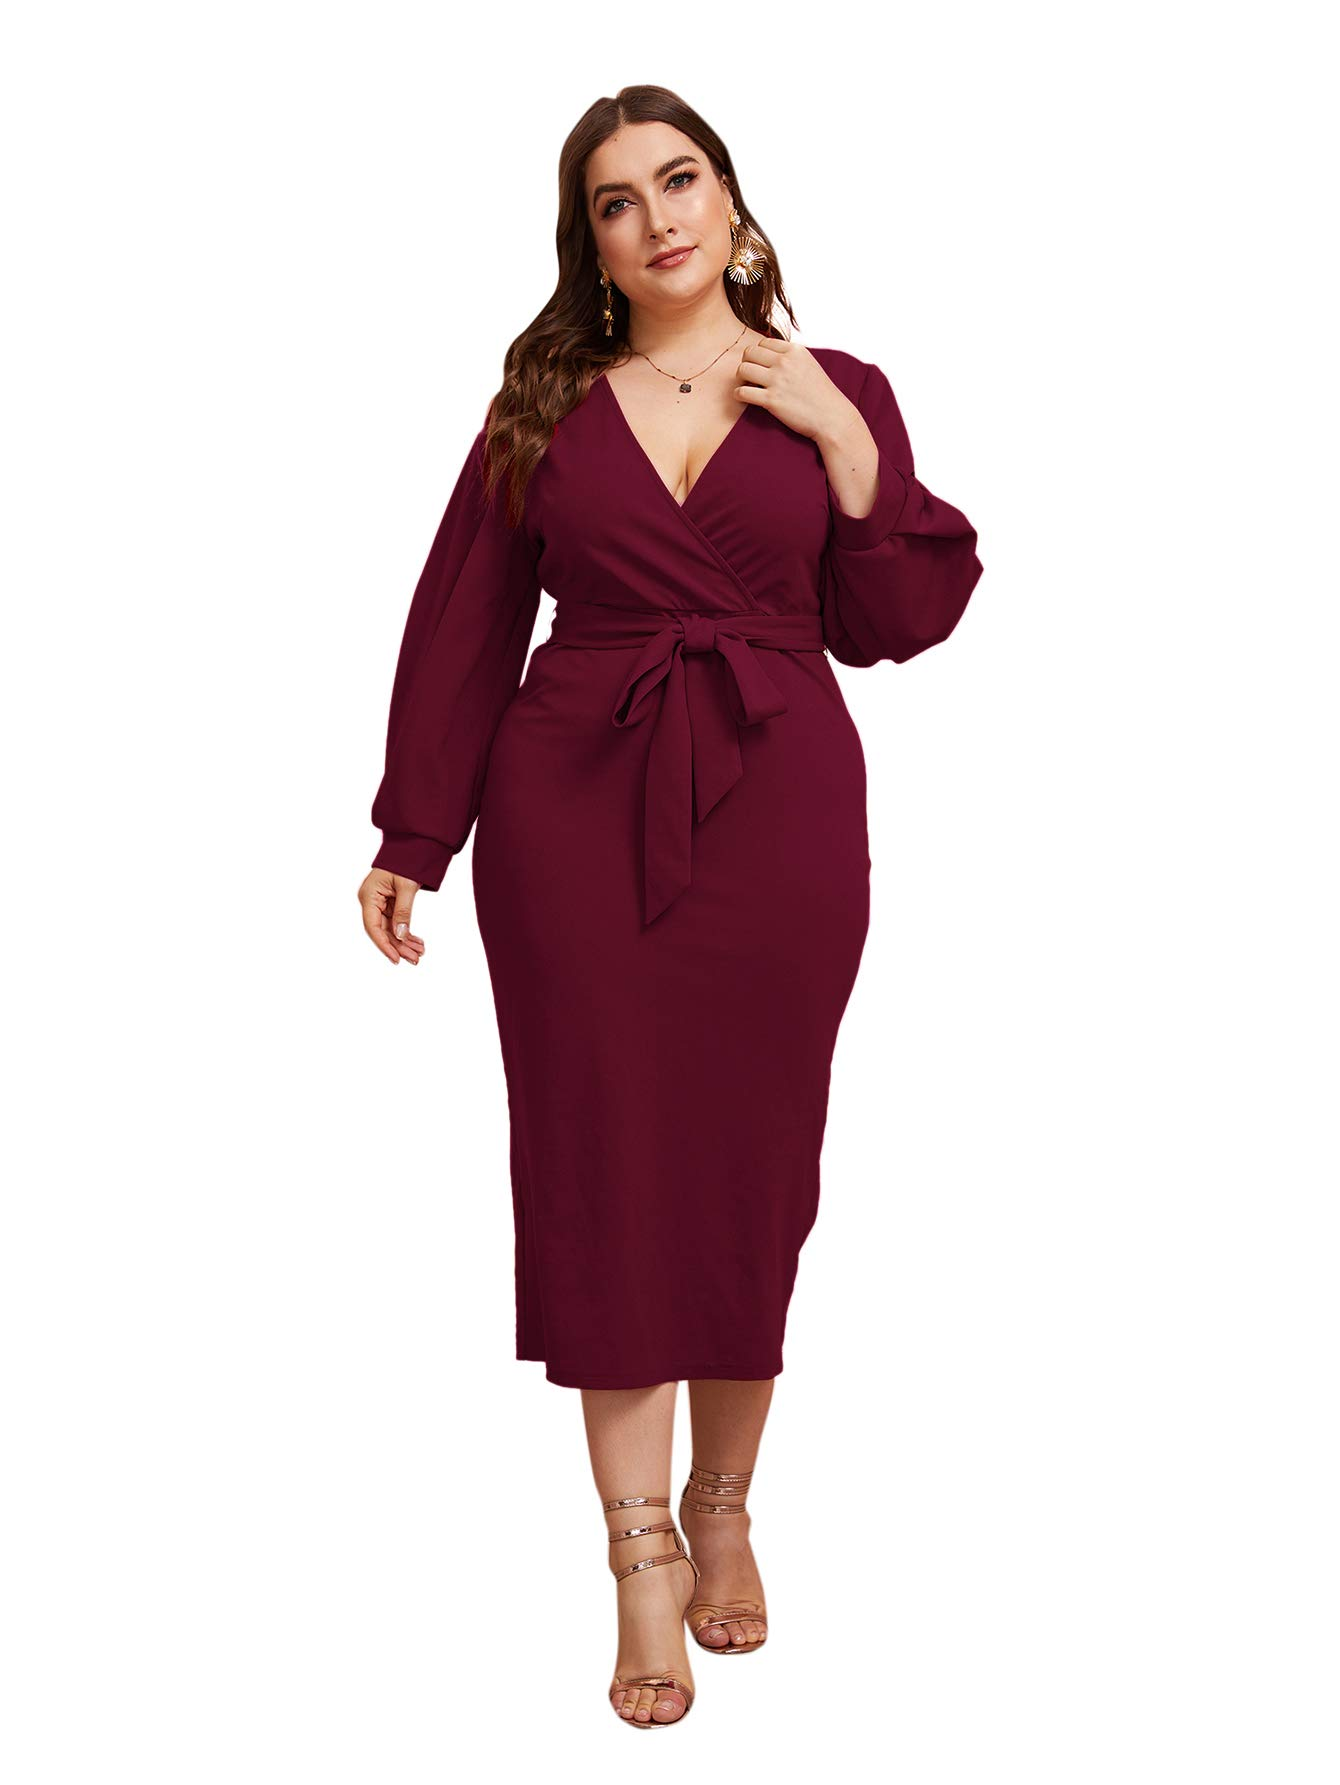 Verdusa Women's Plus Size Bishop Sleeve Plunging V Neck Belted Bodycon Dress Red 0XL